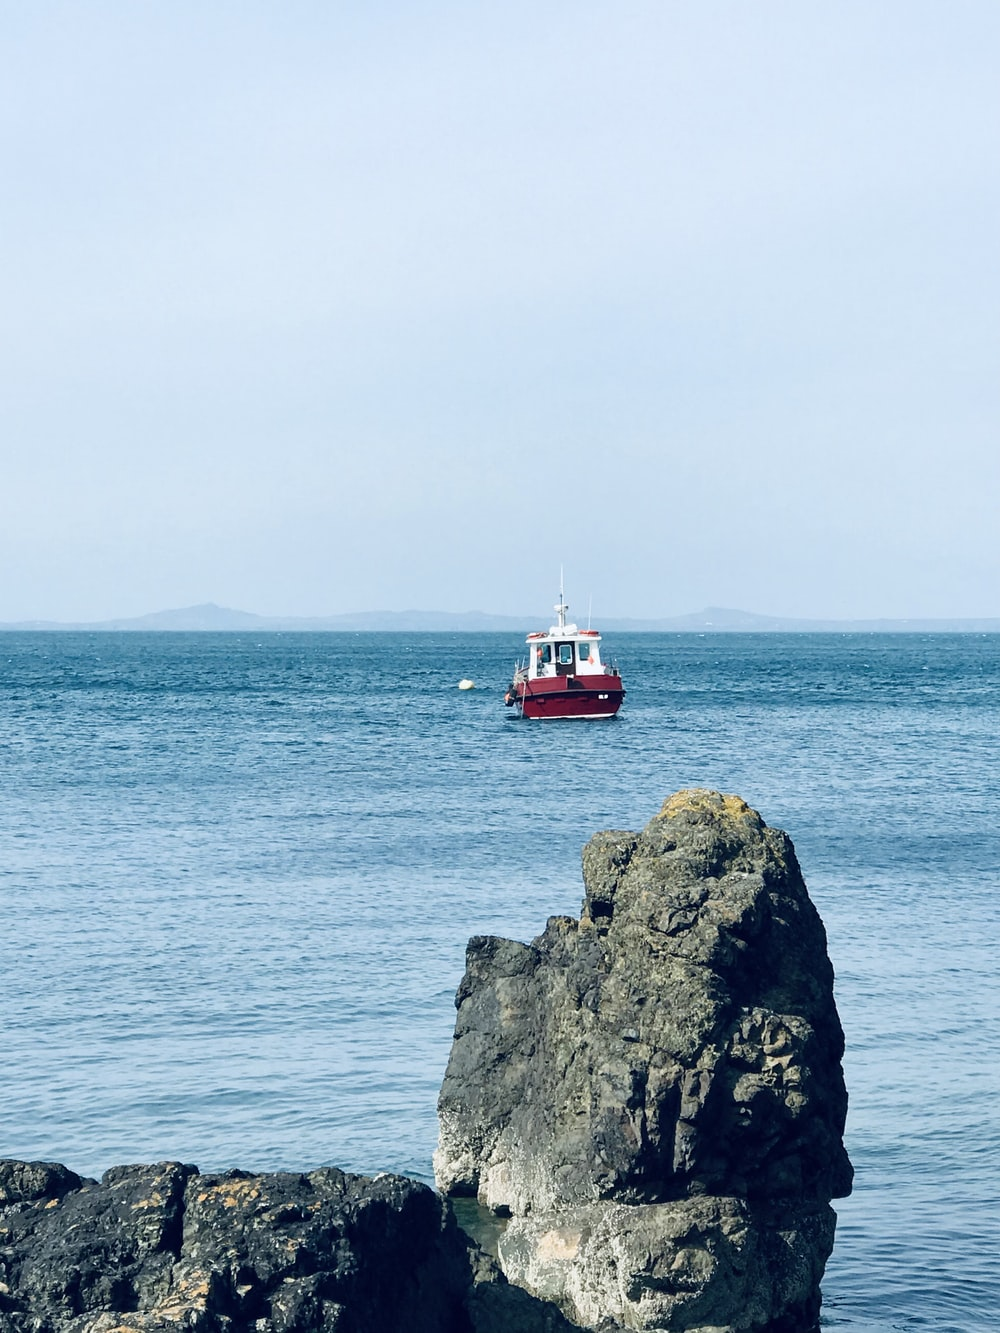 red and white boat on sea near gray rock formation during daytime